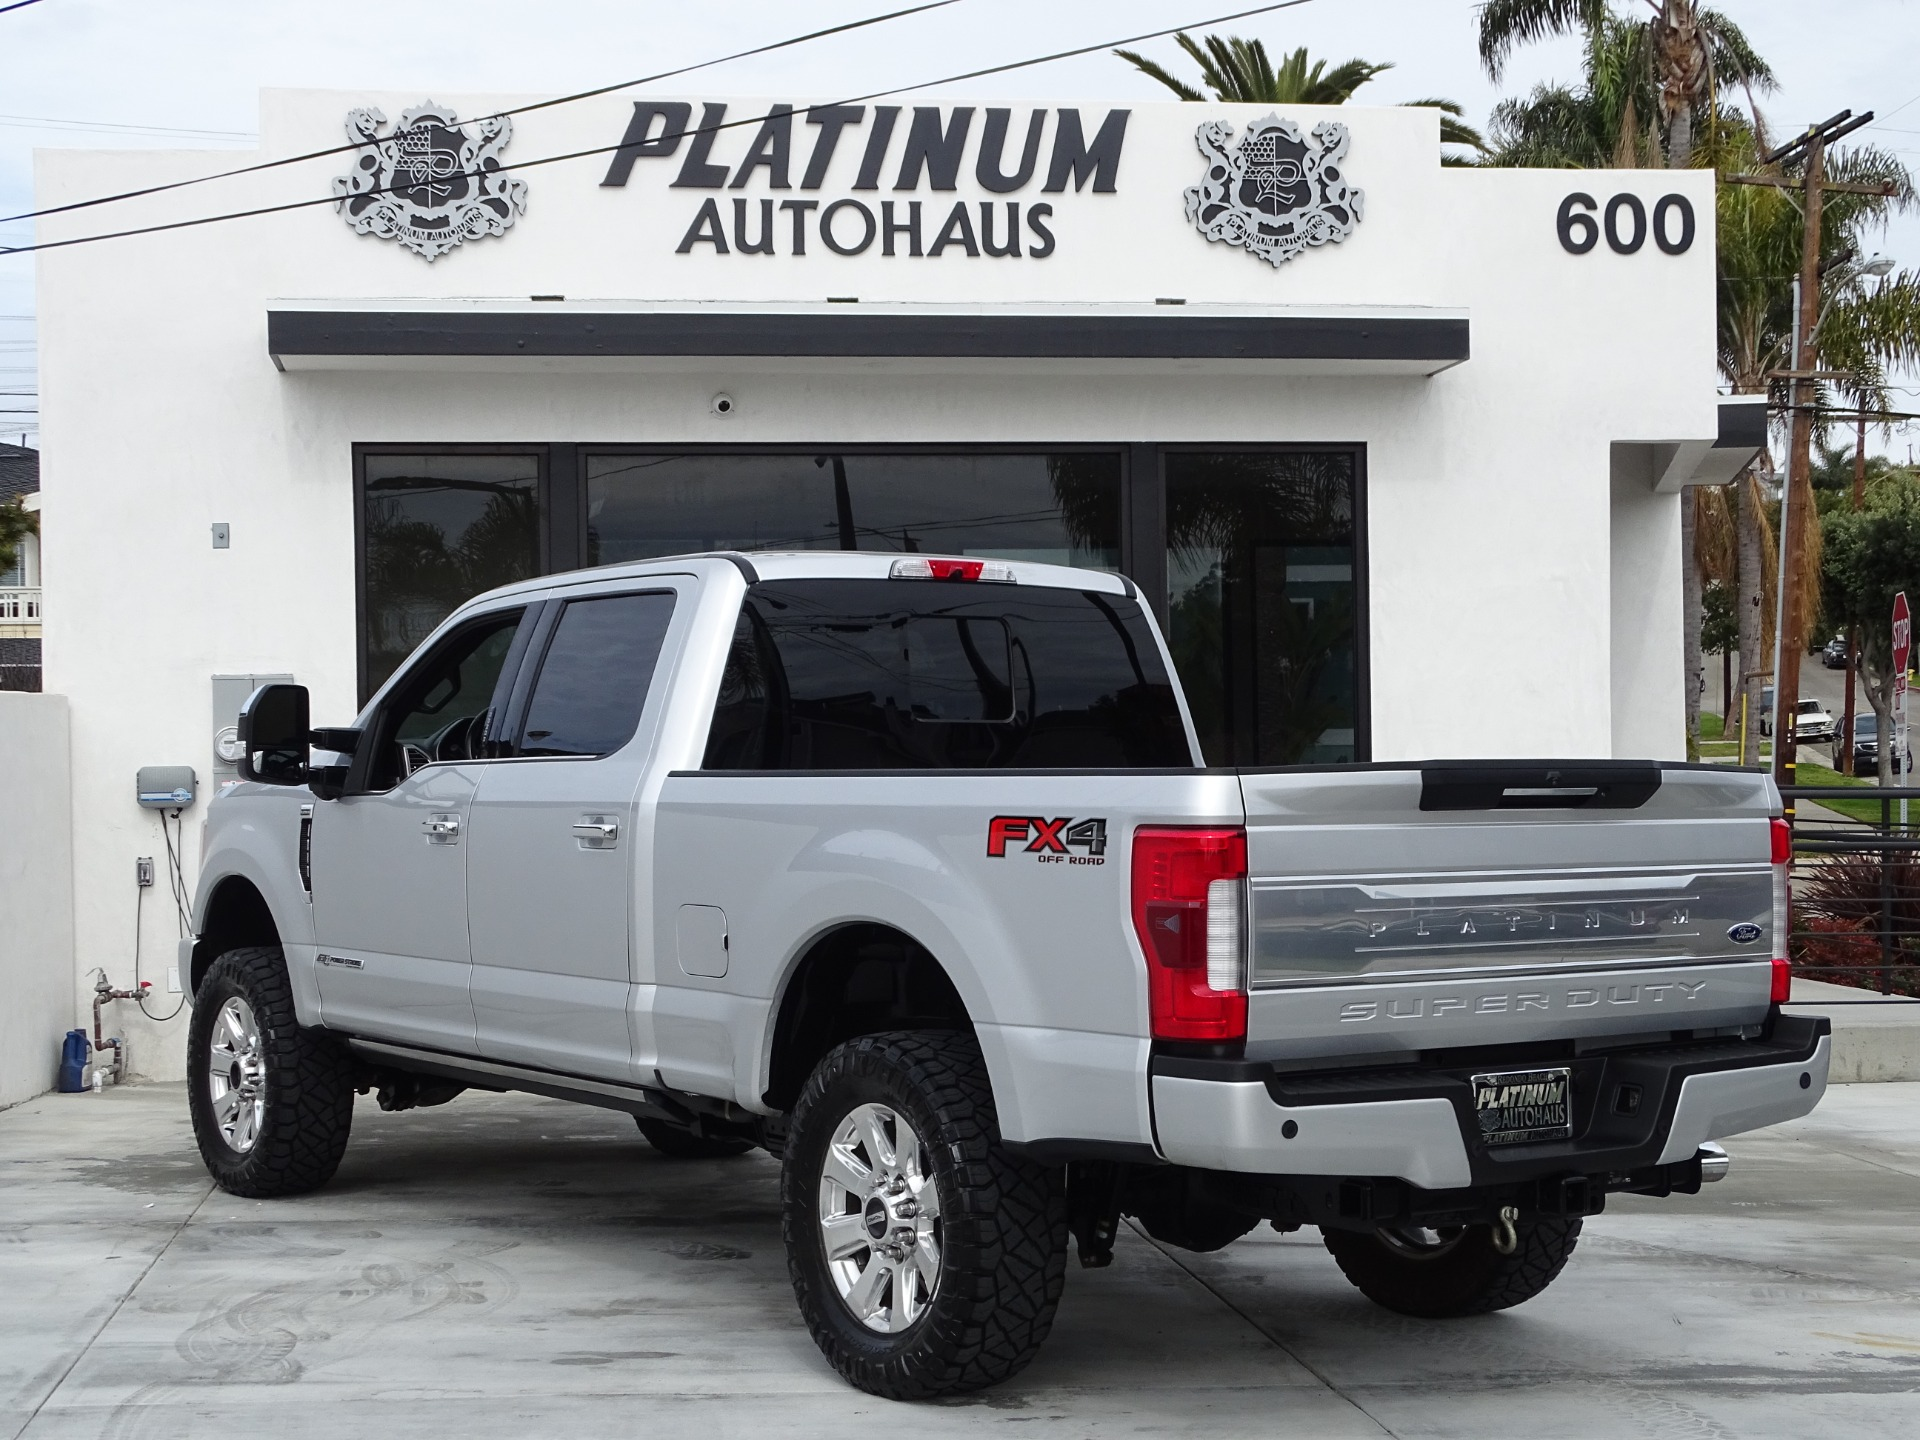 Ford F250 For Sale Near Me >> 2018 Ford F-250 Super Duty Platinum Ultimate *** EVERY